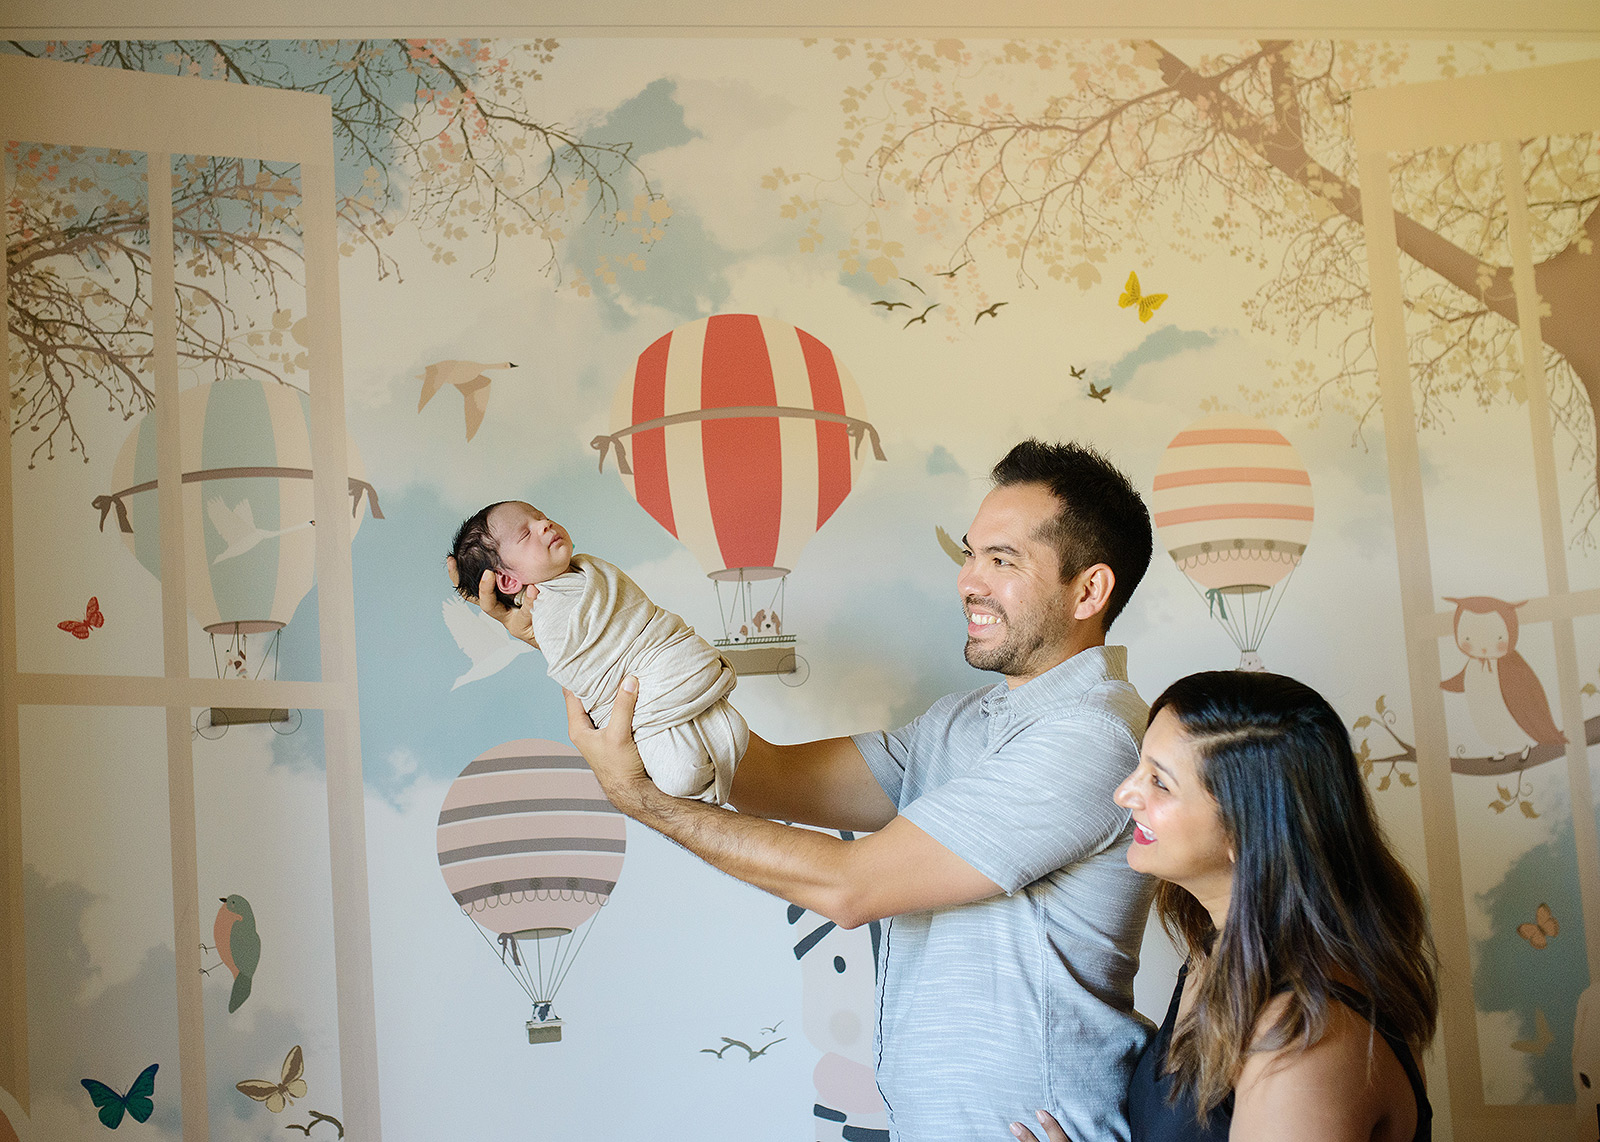 Dad holding newborn baby up against hot air balloon wallpaper in nursery